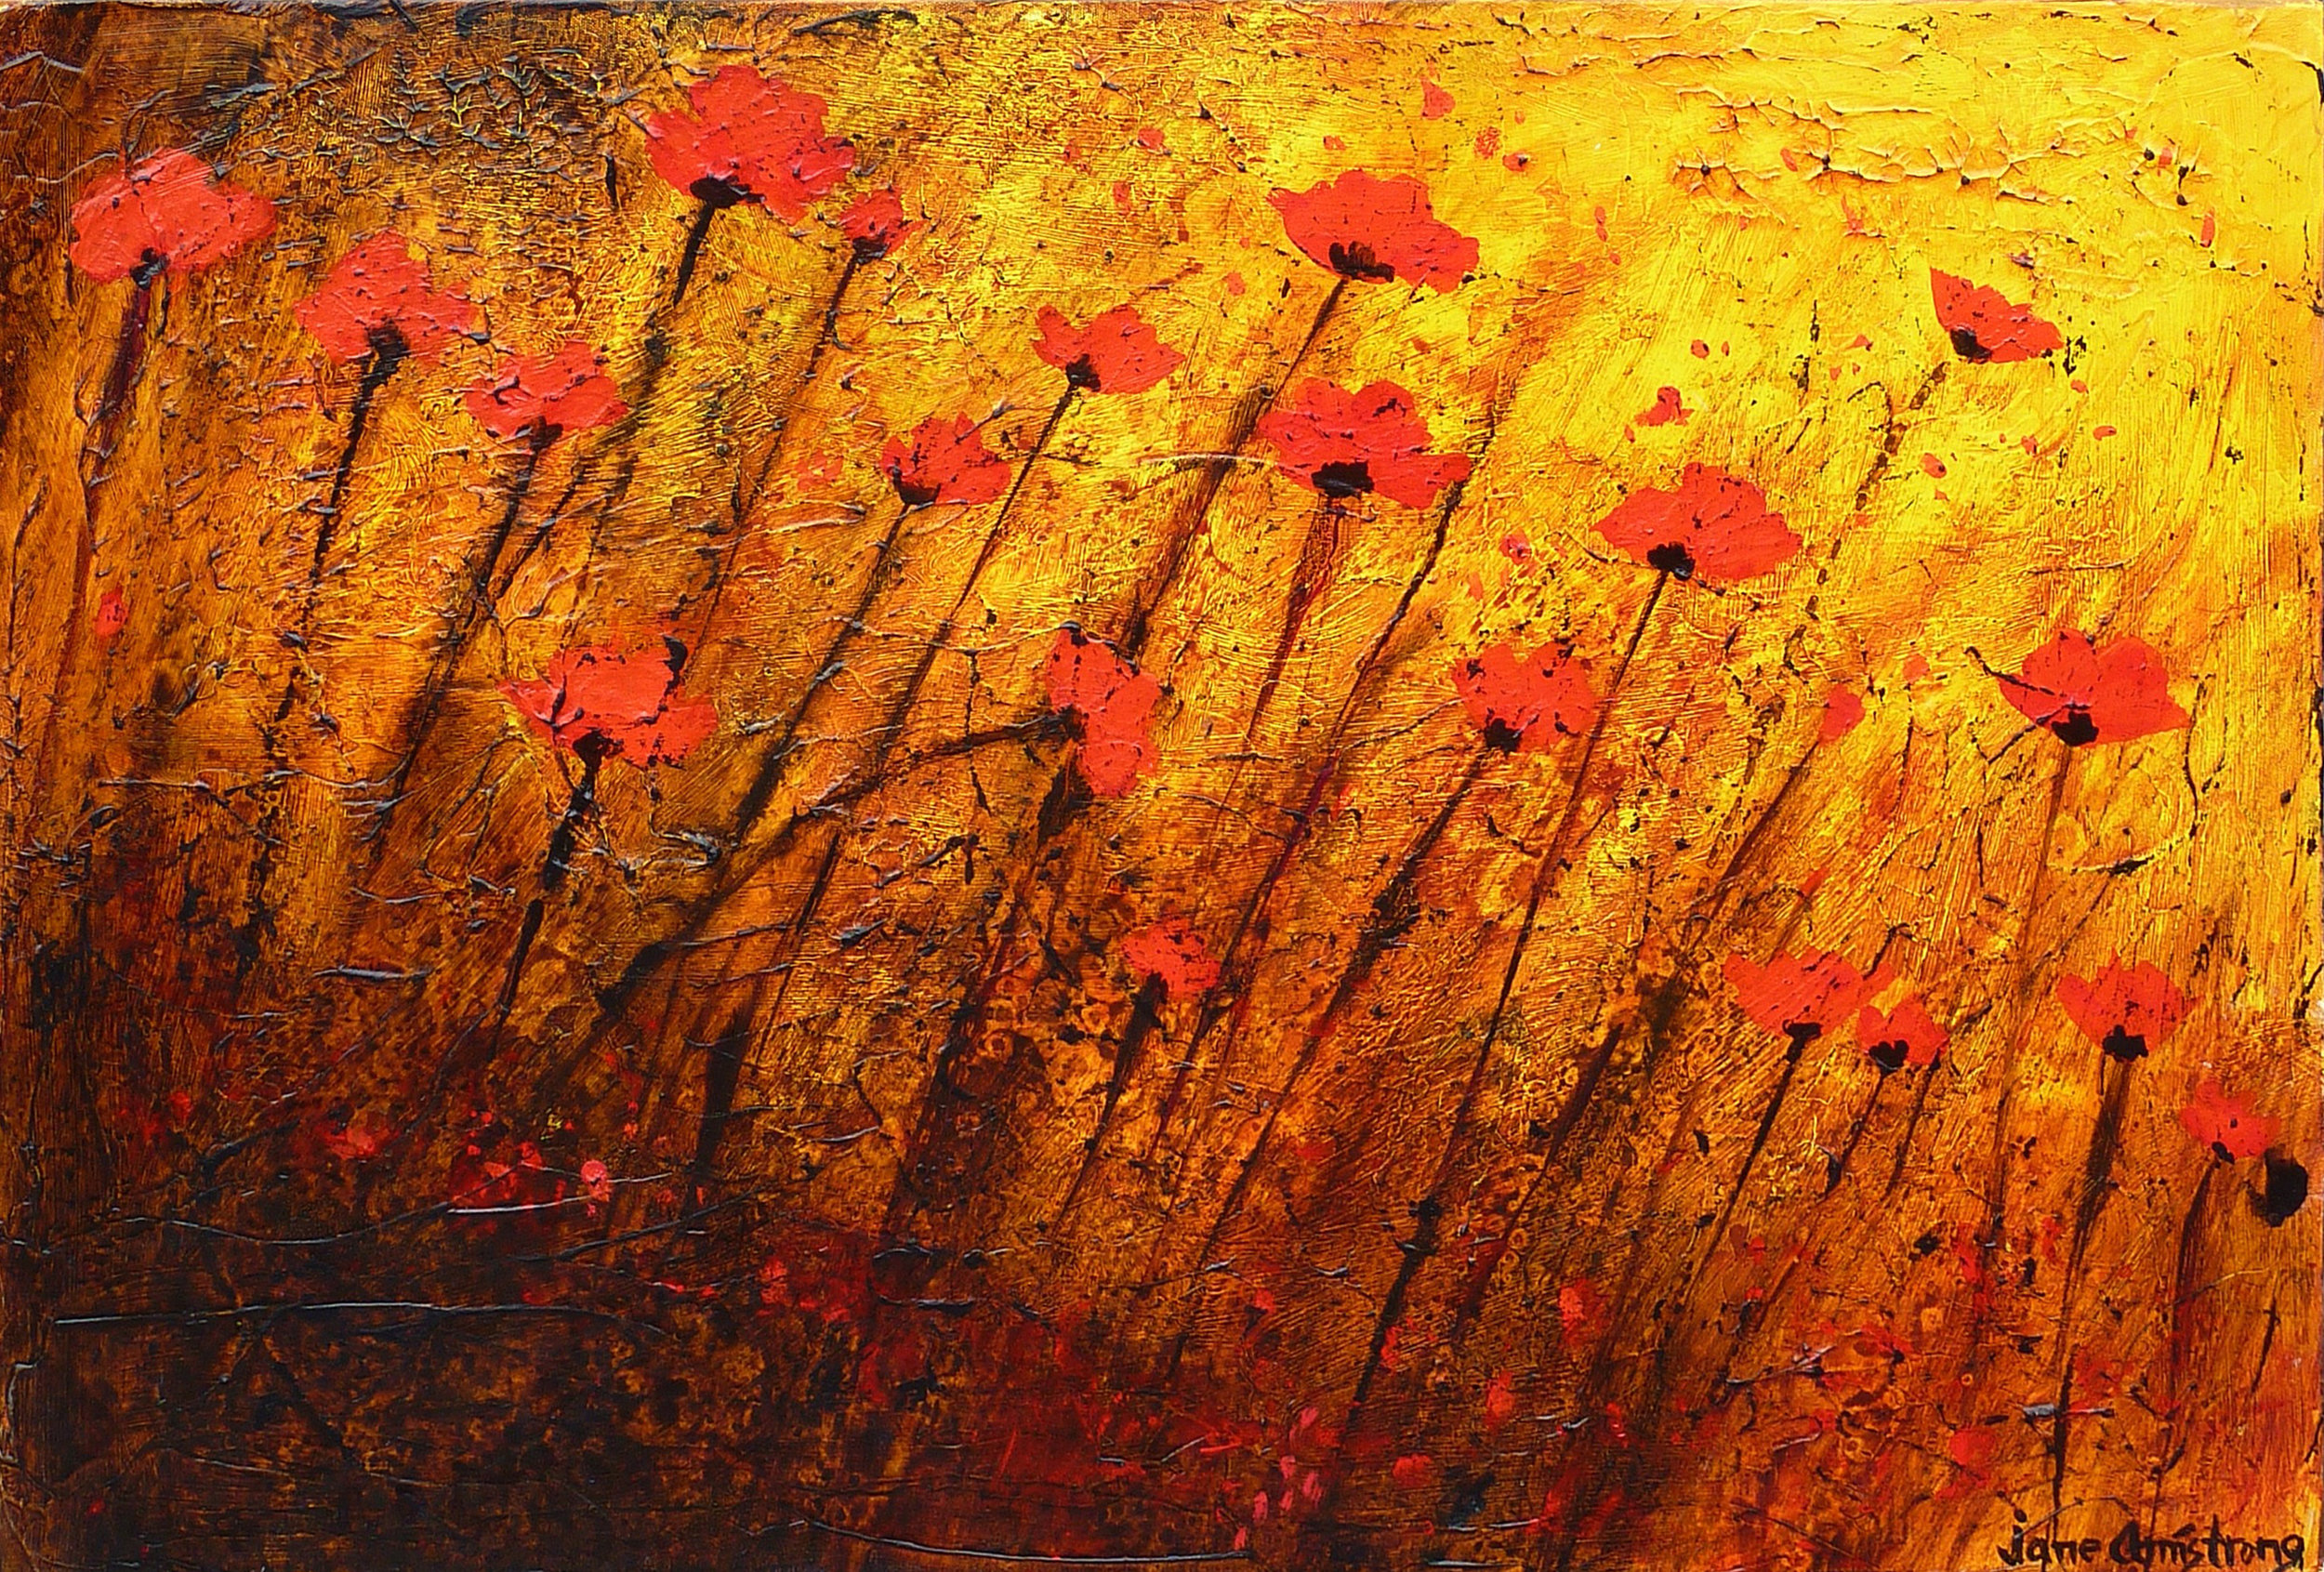 Poppies in the Wild Acrylic 24 x 30